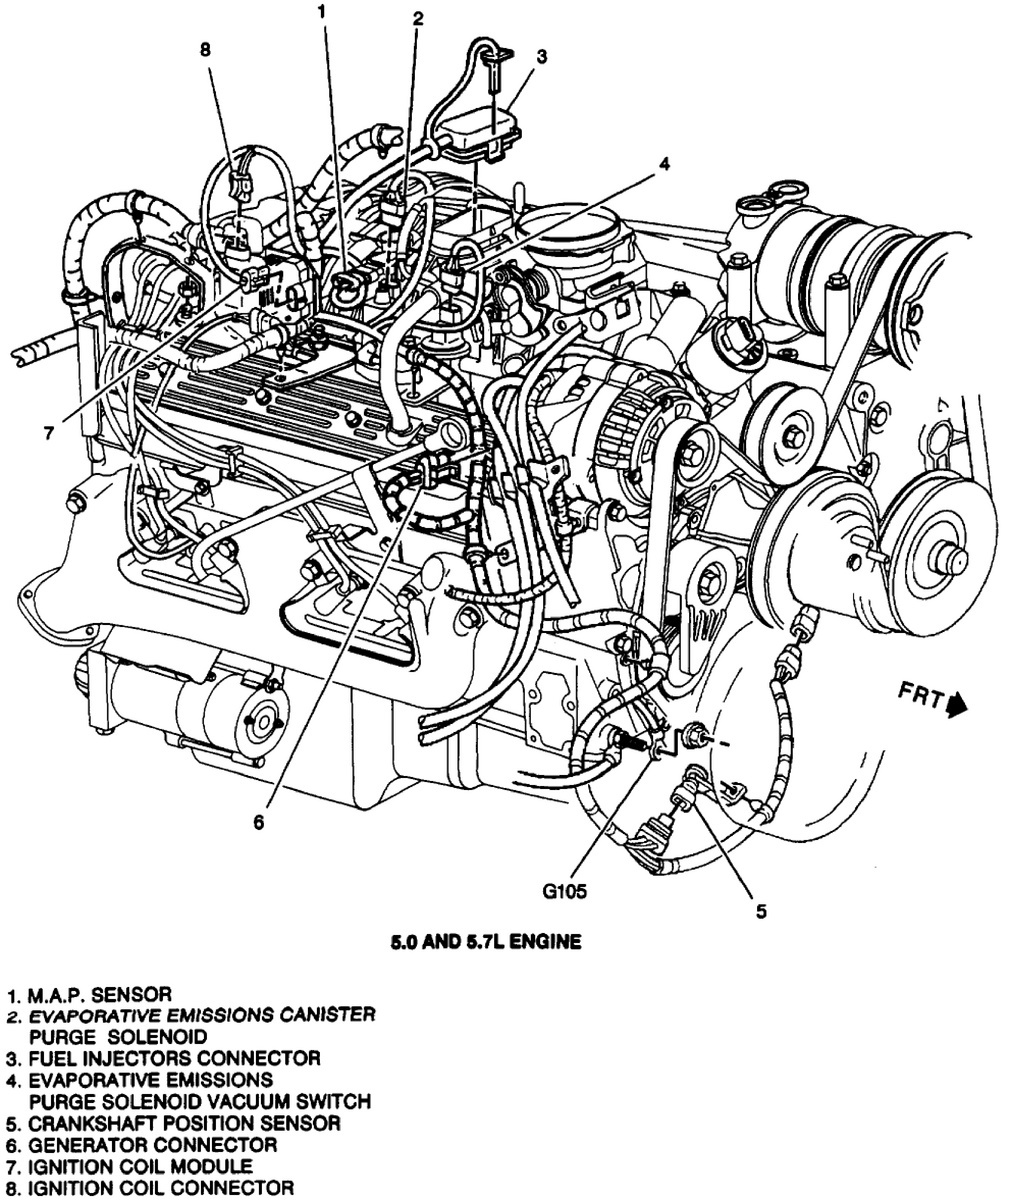 5 7l vortec engine diagram enthusiast wiring diagrams u2022 rh rasalibre co 4.3 Intake Diagram 97 4.3 Vortec Diagram